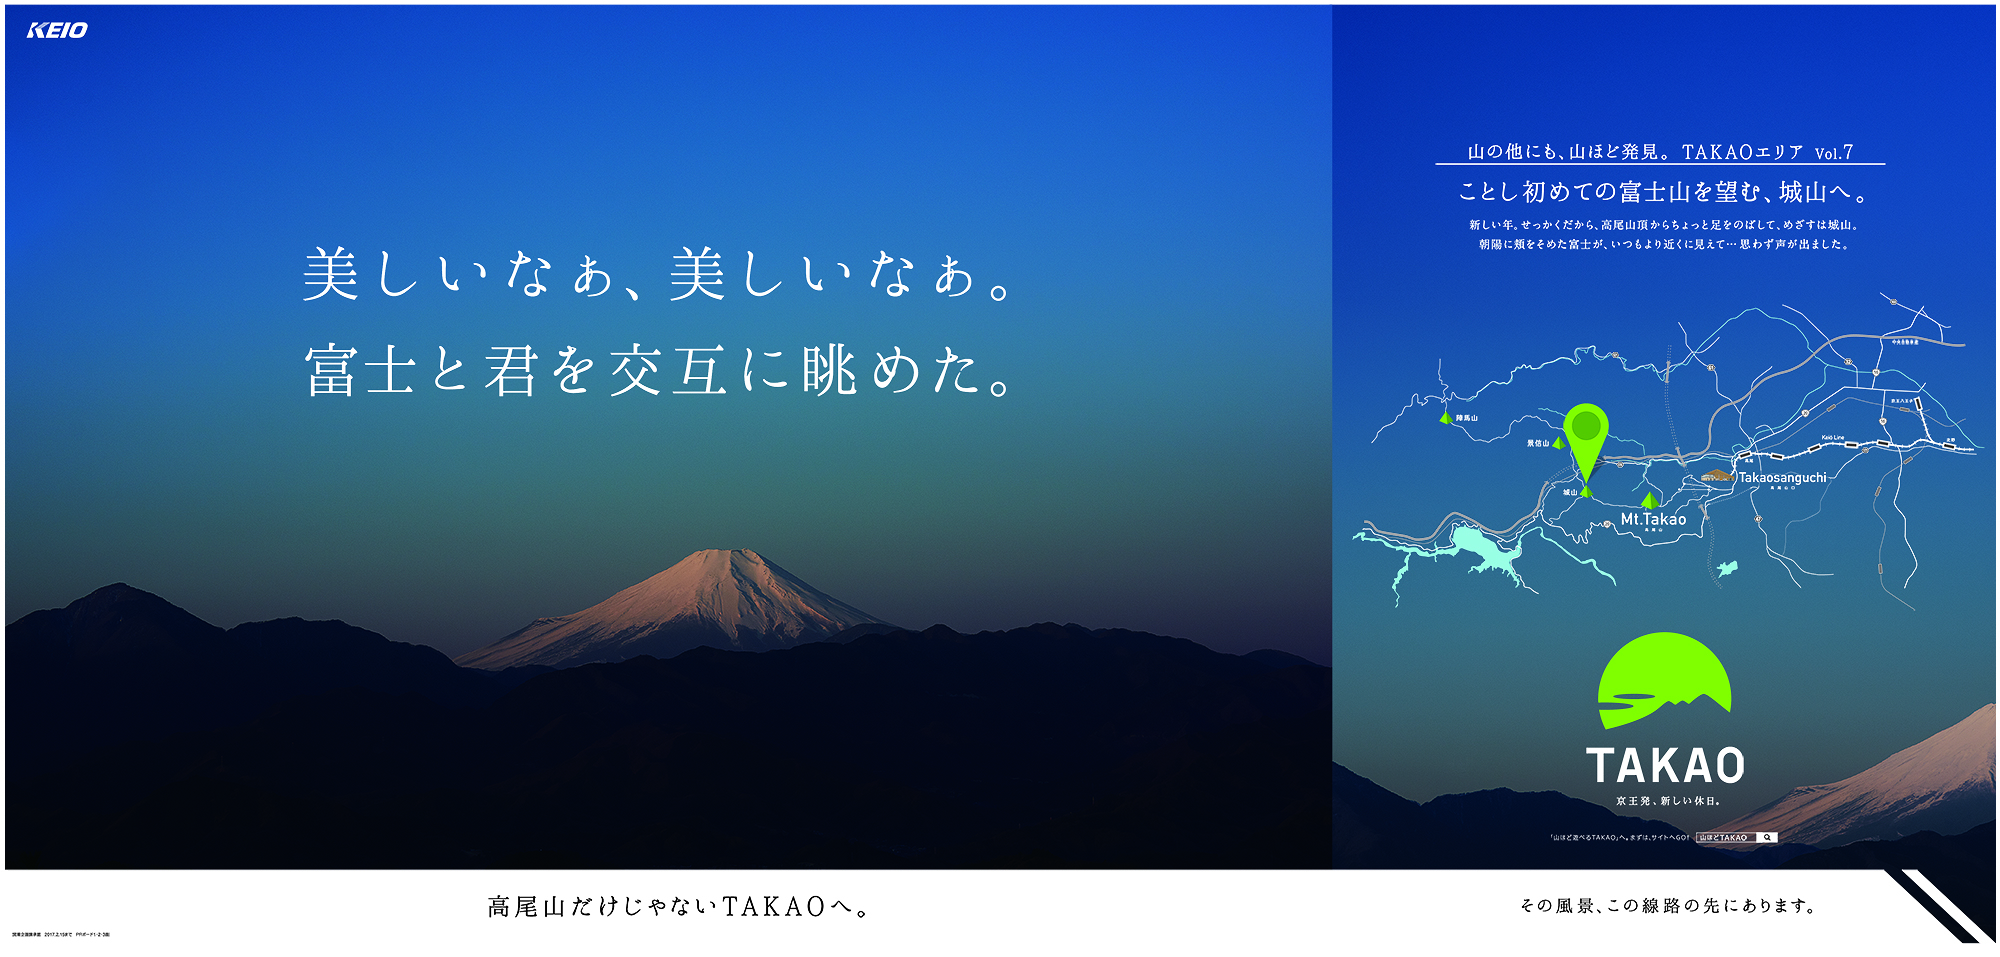 http://www.keio-takao.jp/images/poster_gallery/poster_gallery_img16.jpg